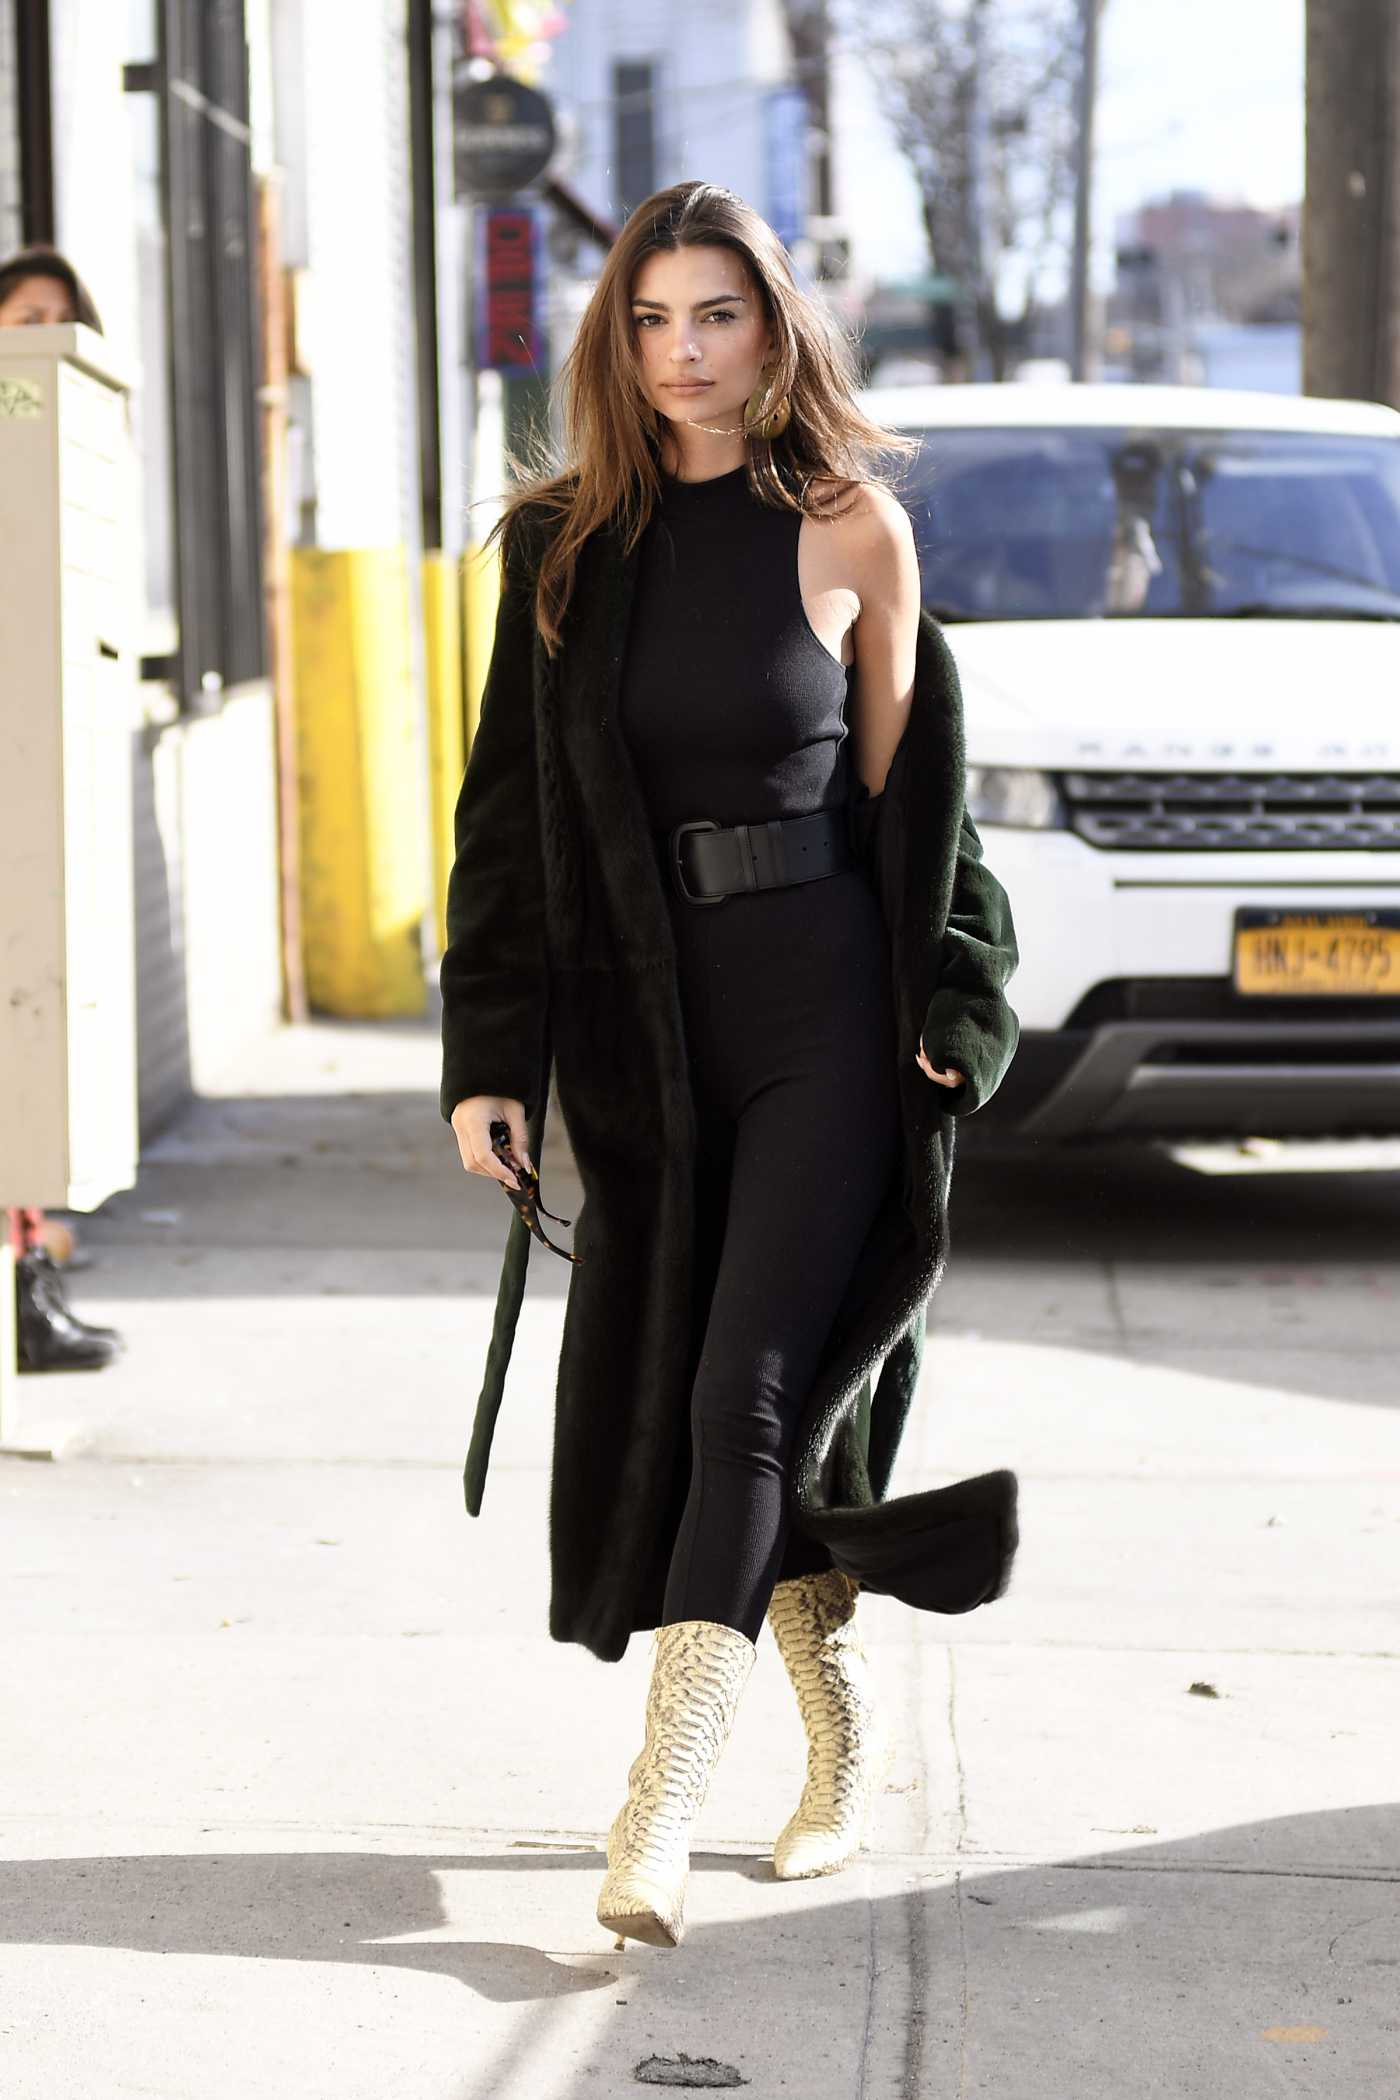 Emily Ratajkowski in a Black Top Does a Photoshoot in New York City 12/05/2019